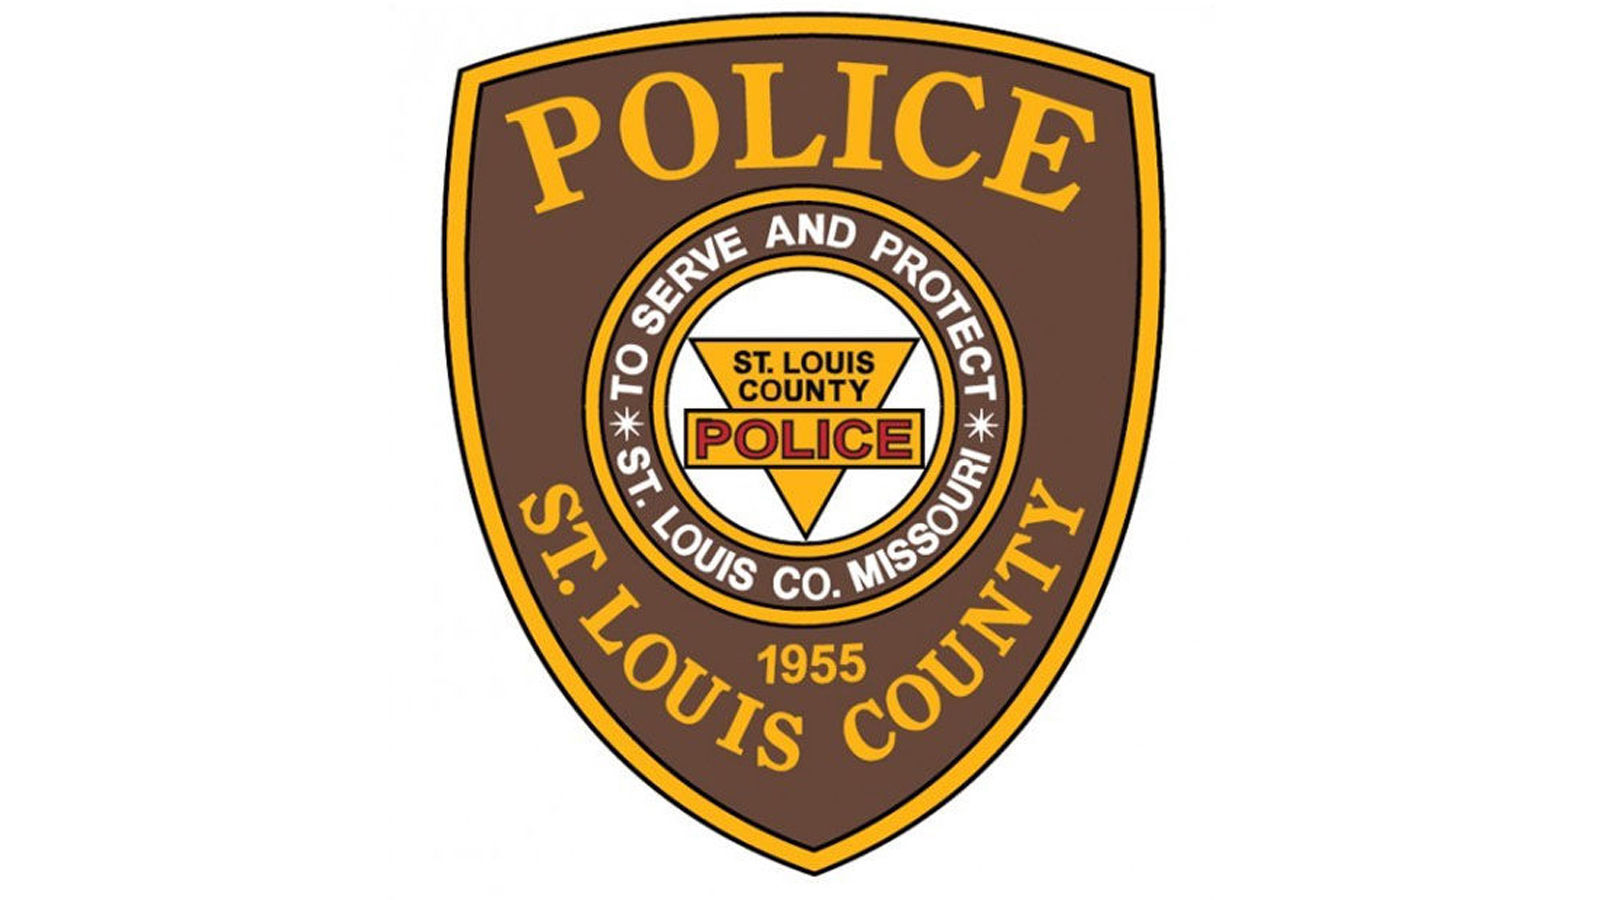 St. Louis County police employee suspended for racial slur